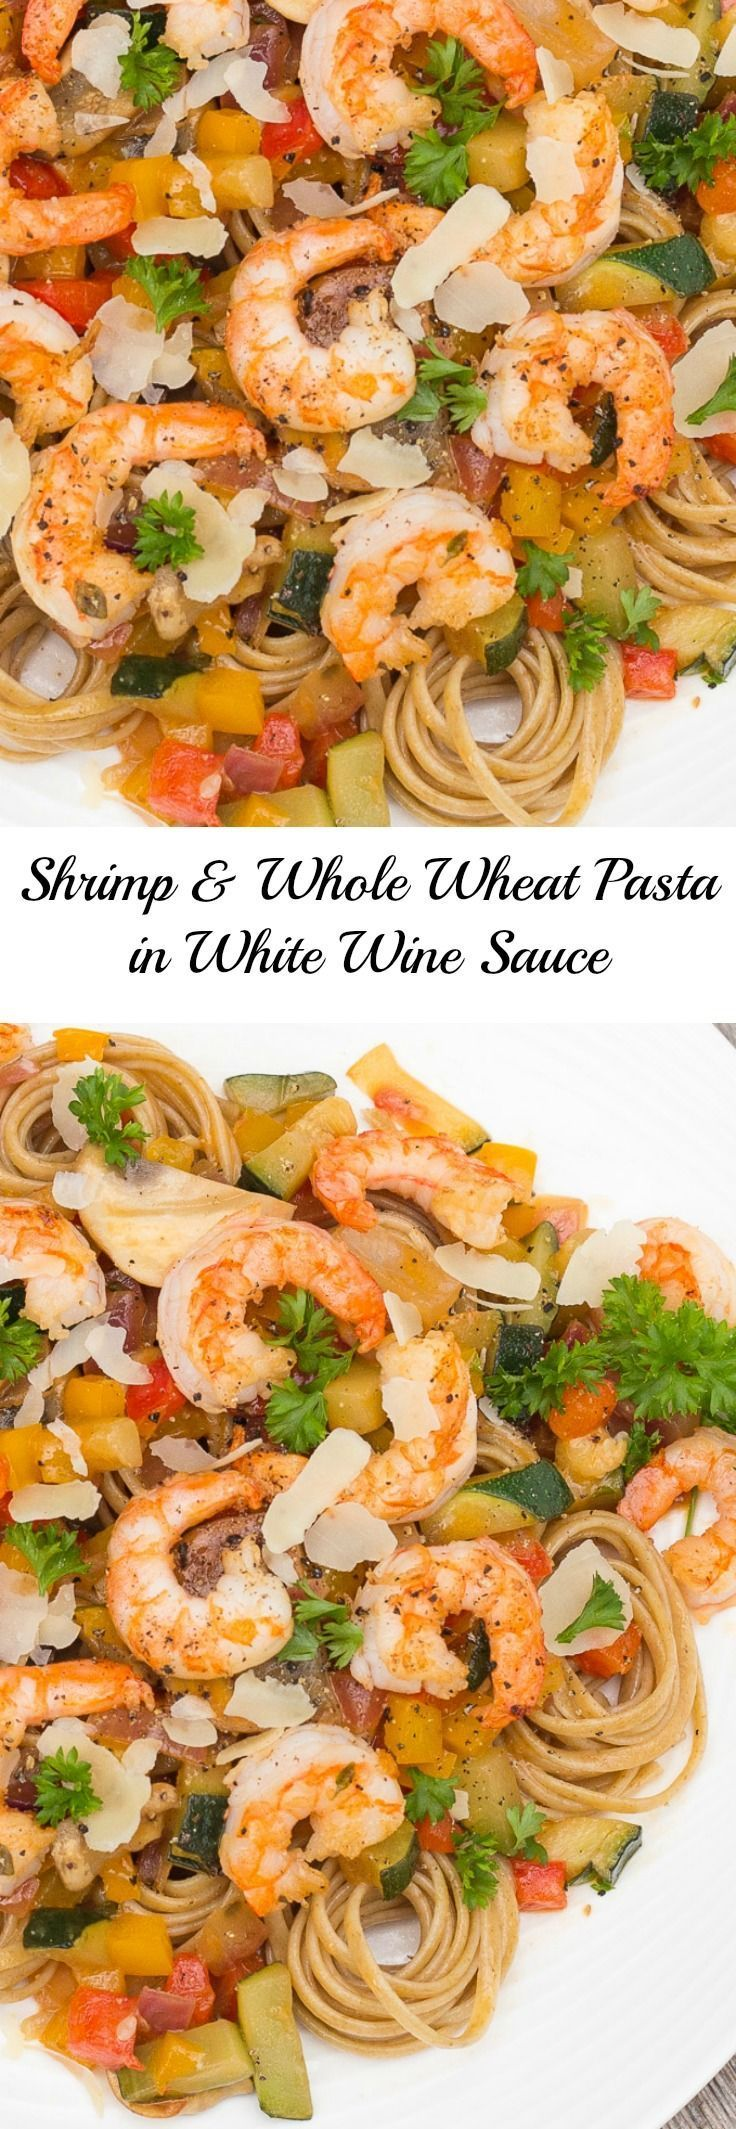 Shrimp with Whole Wheat Pasta in a White Wine Sauce